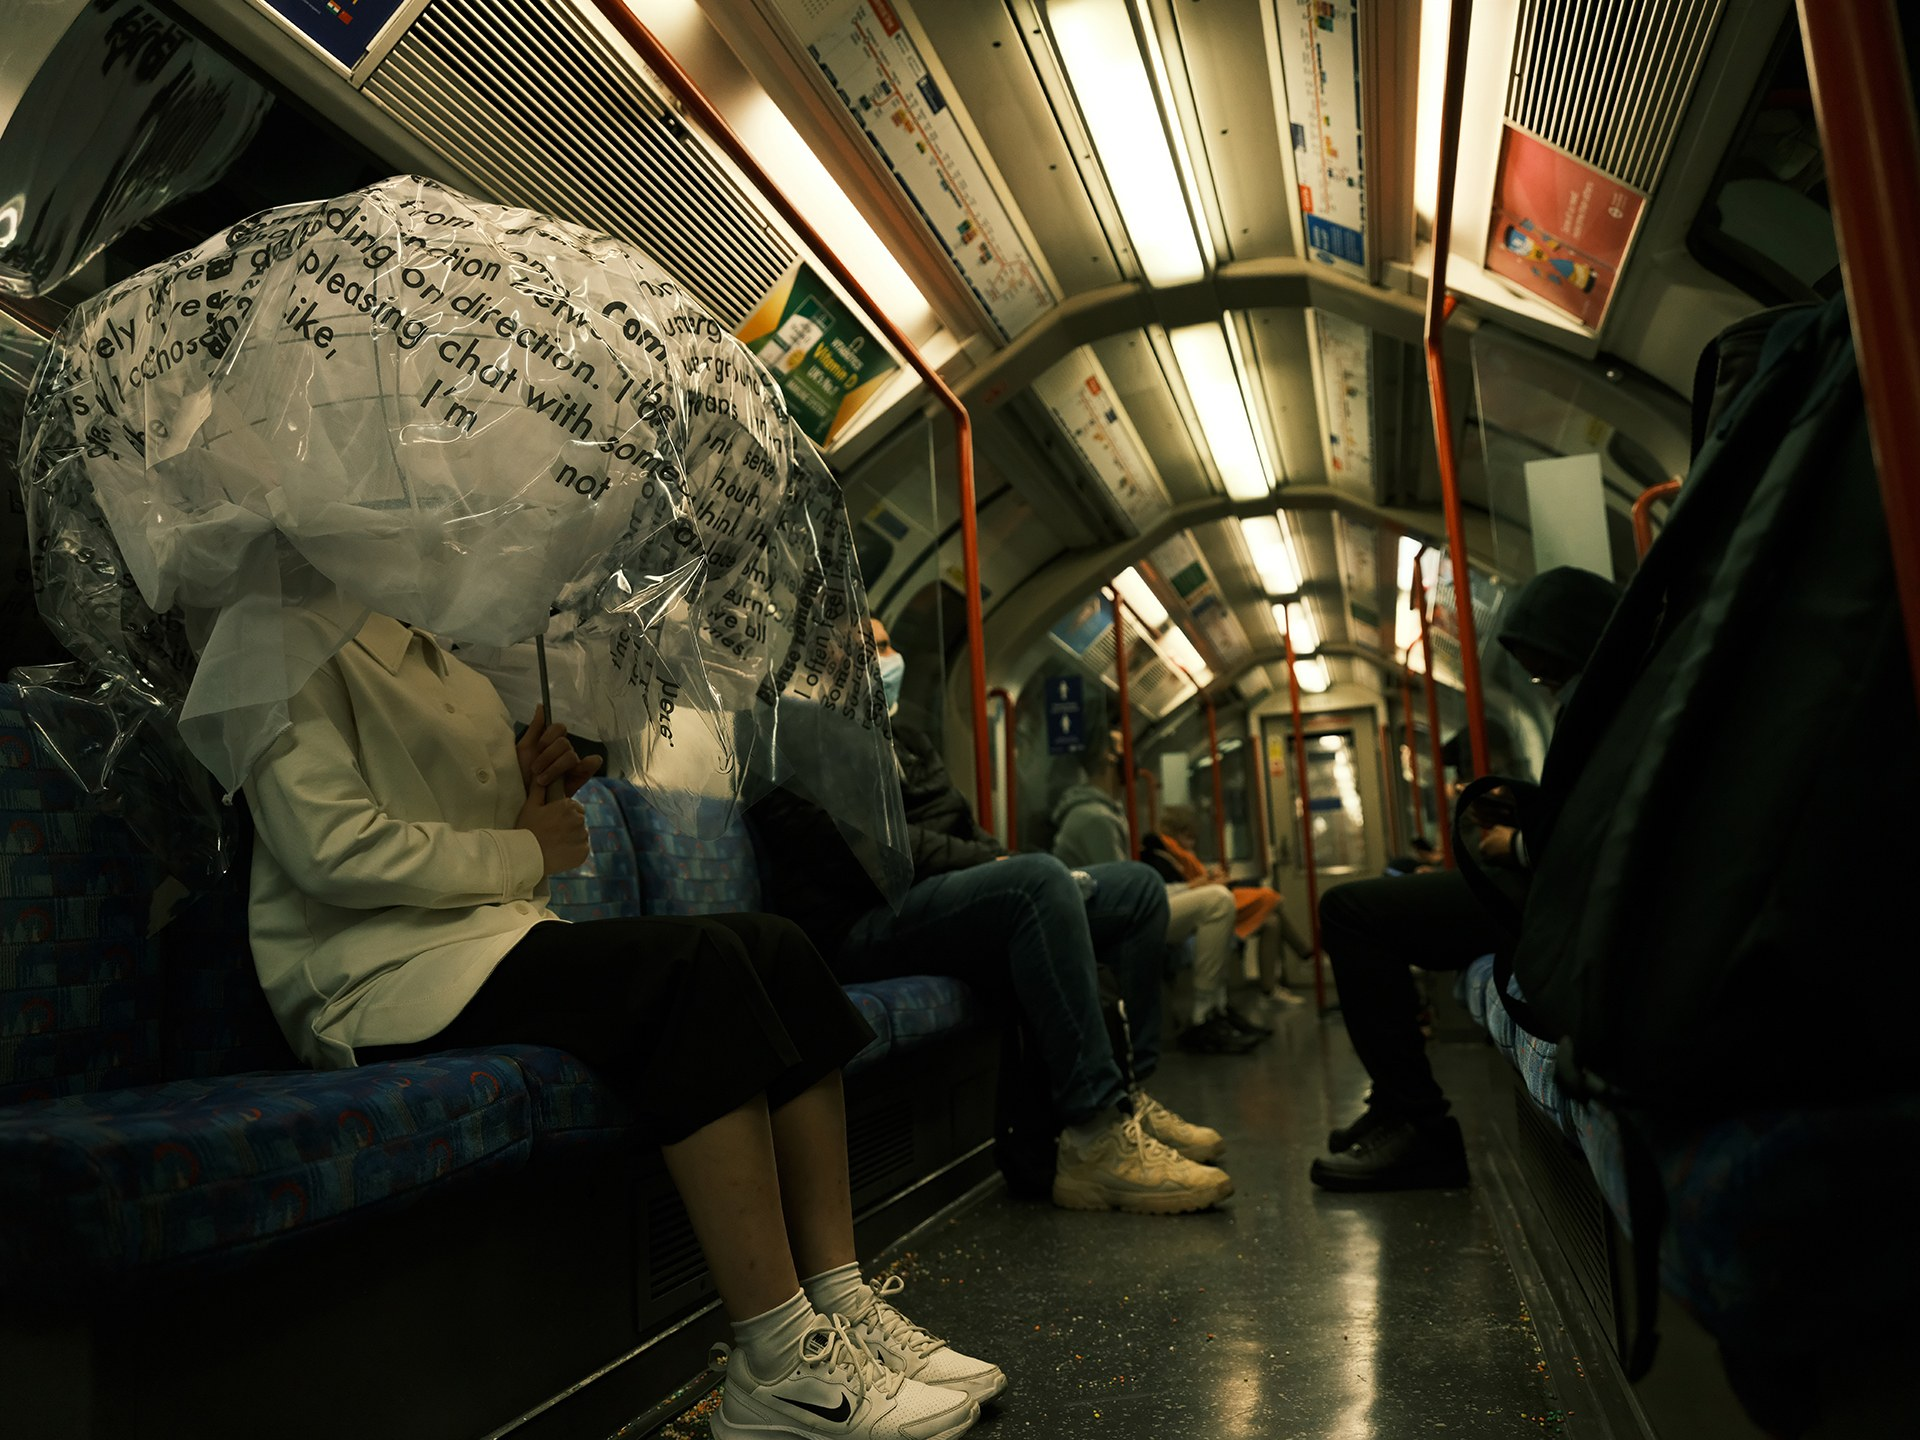 'Commute' on the Piccadilly Line, London, 2021